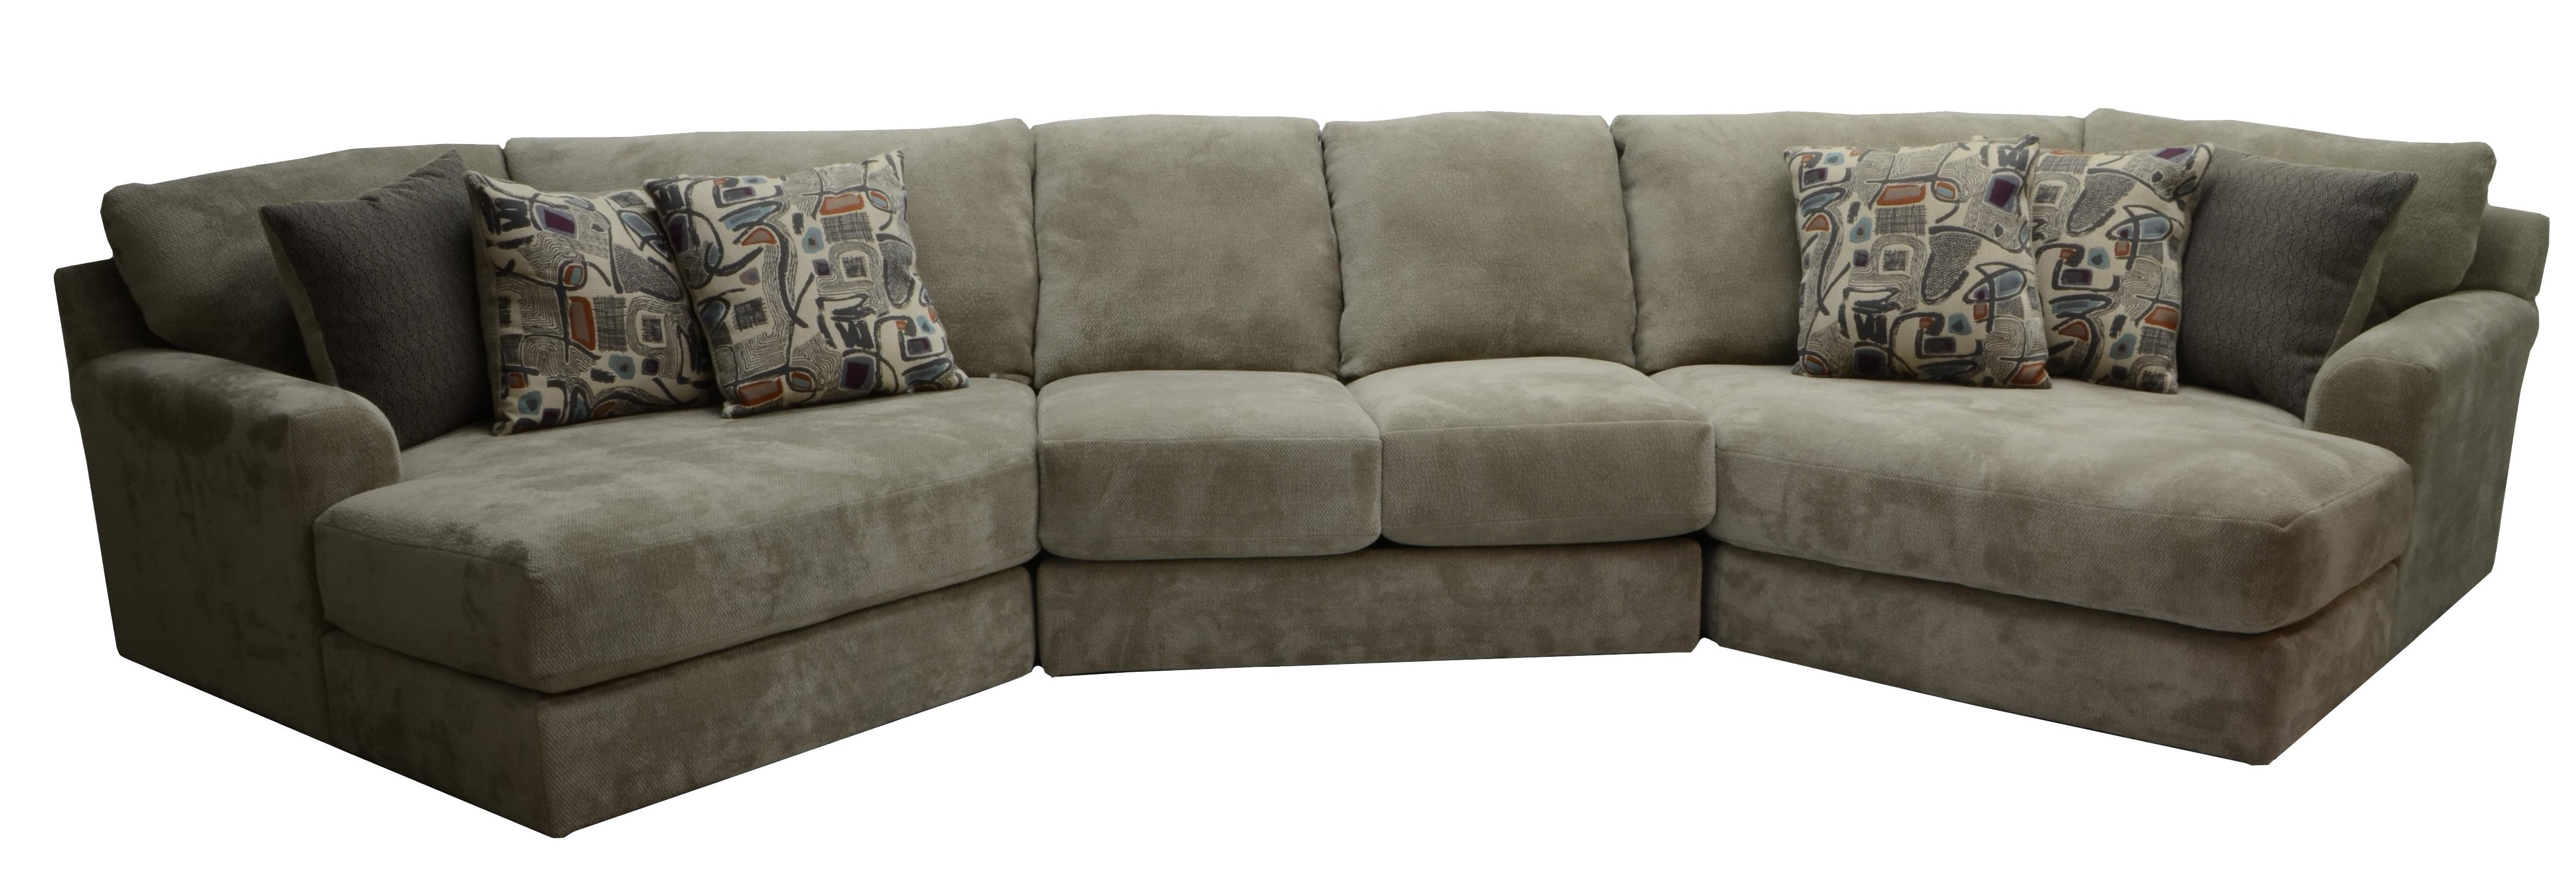 16 Wedge Sectional Sofa (Gallery 15 of 20)